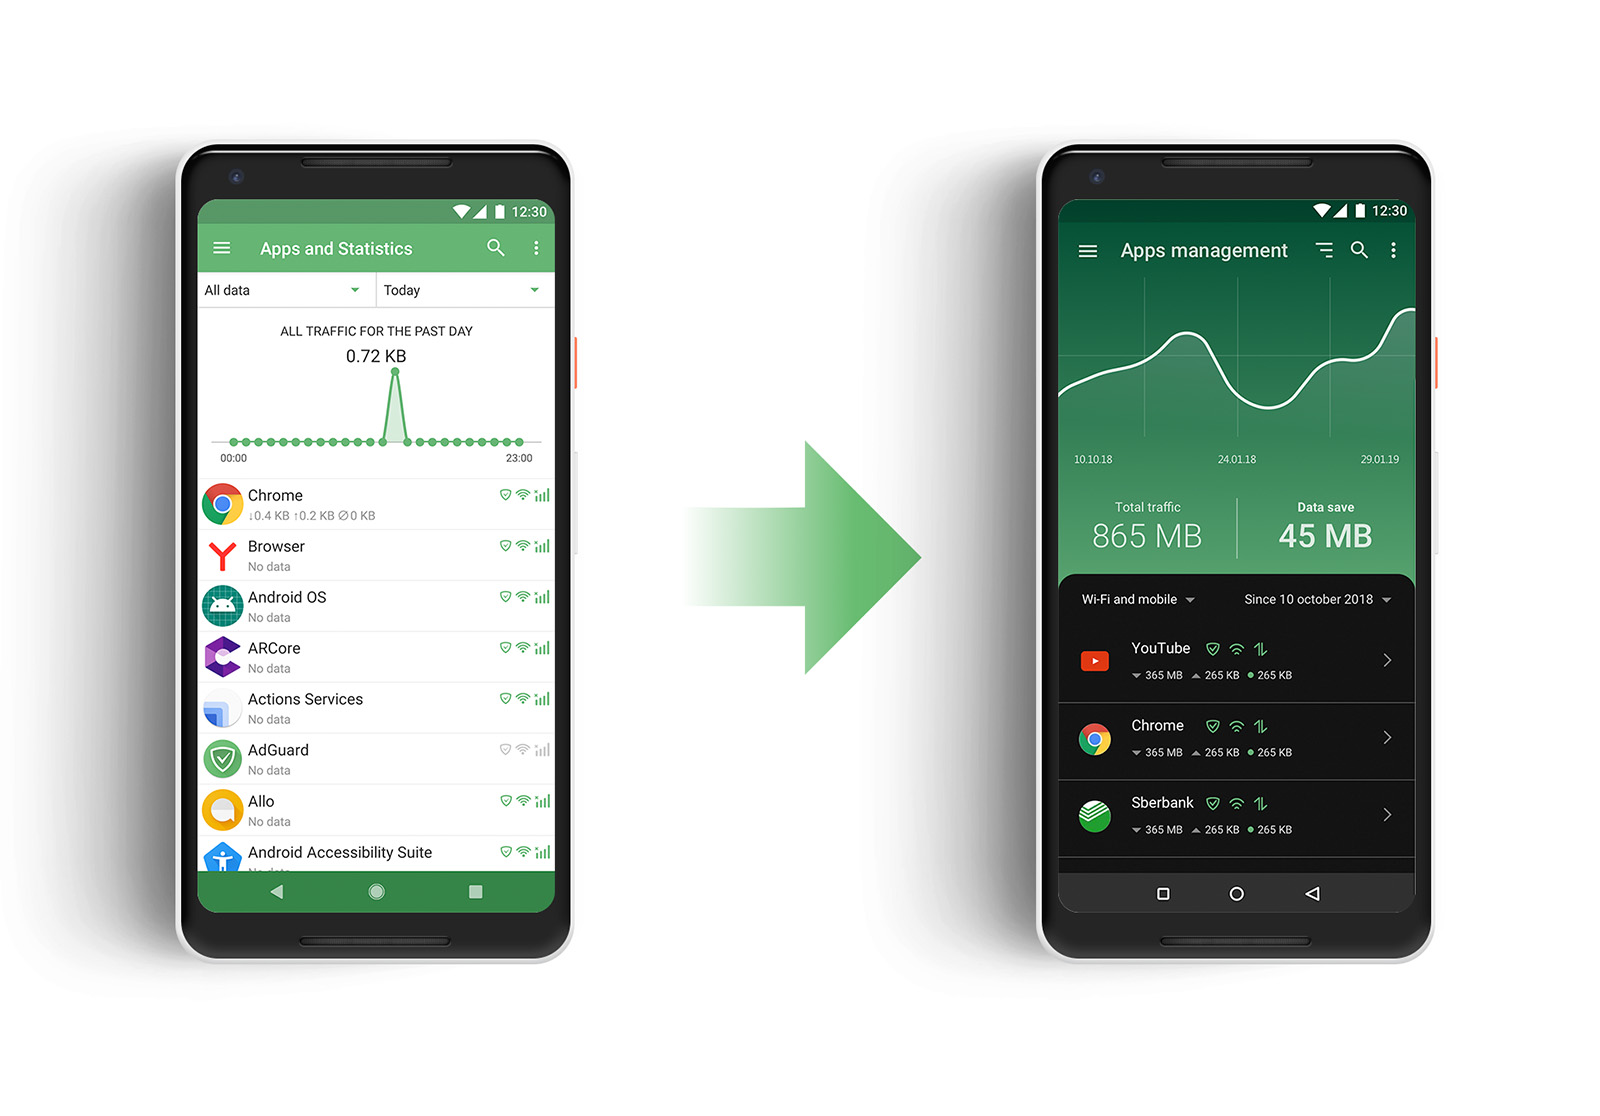 AdGuard 3.0 for Android